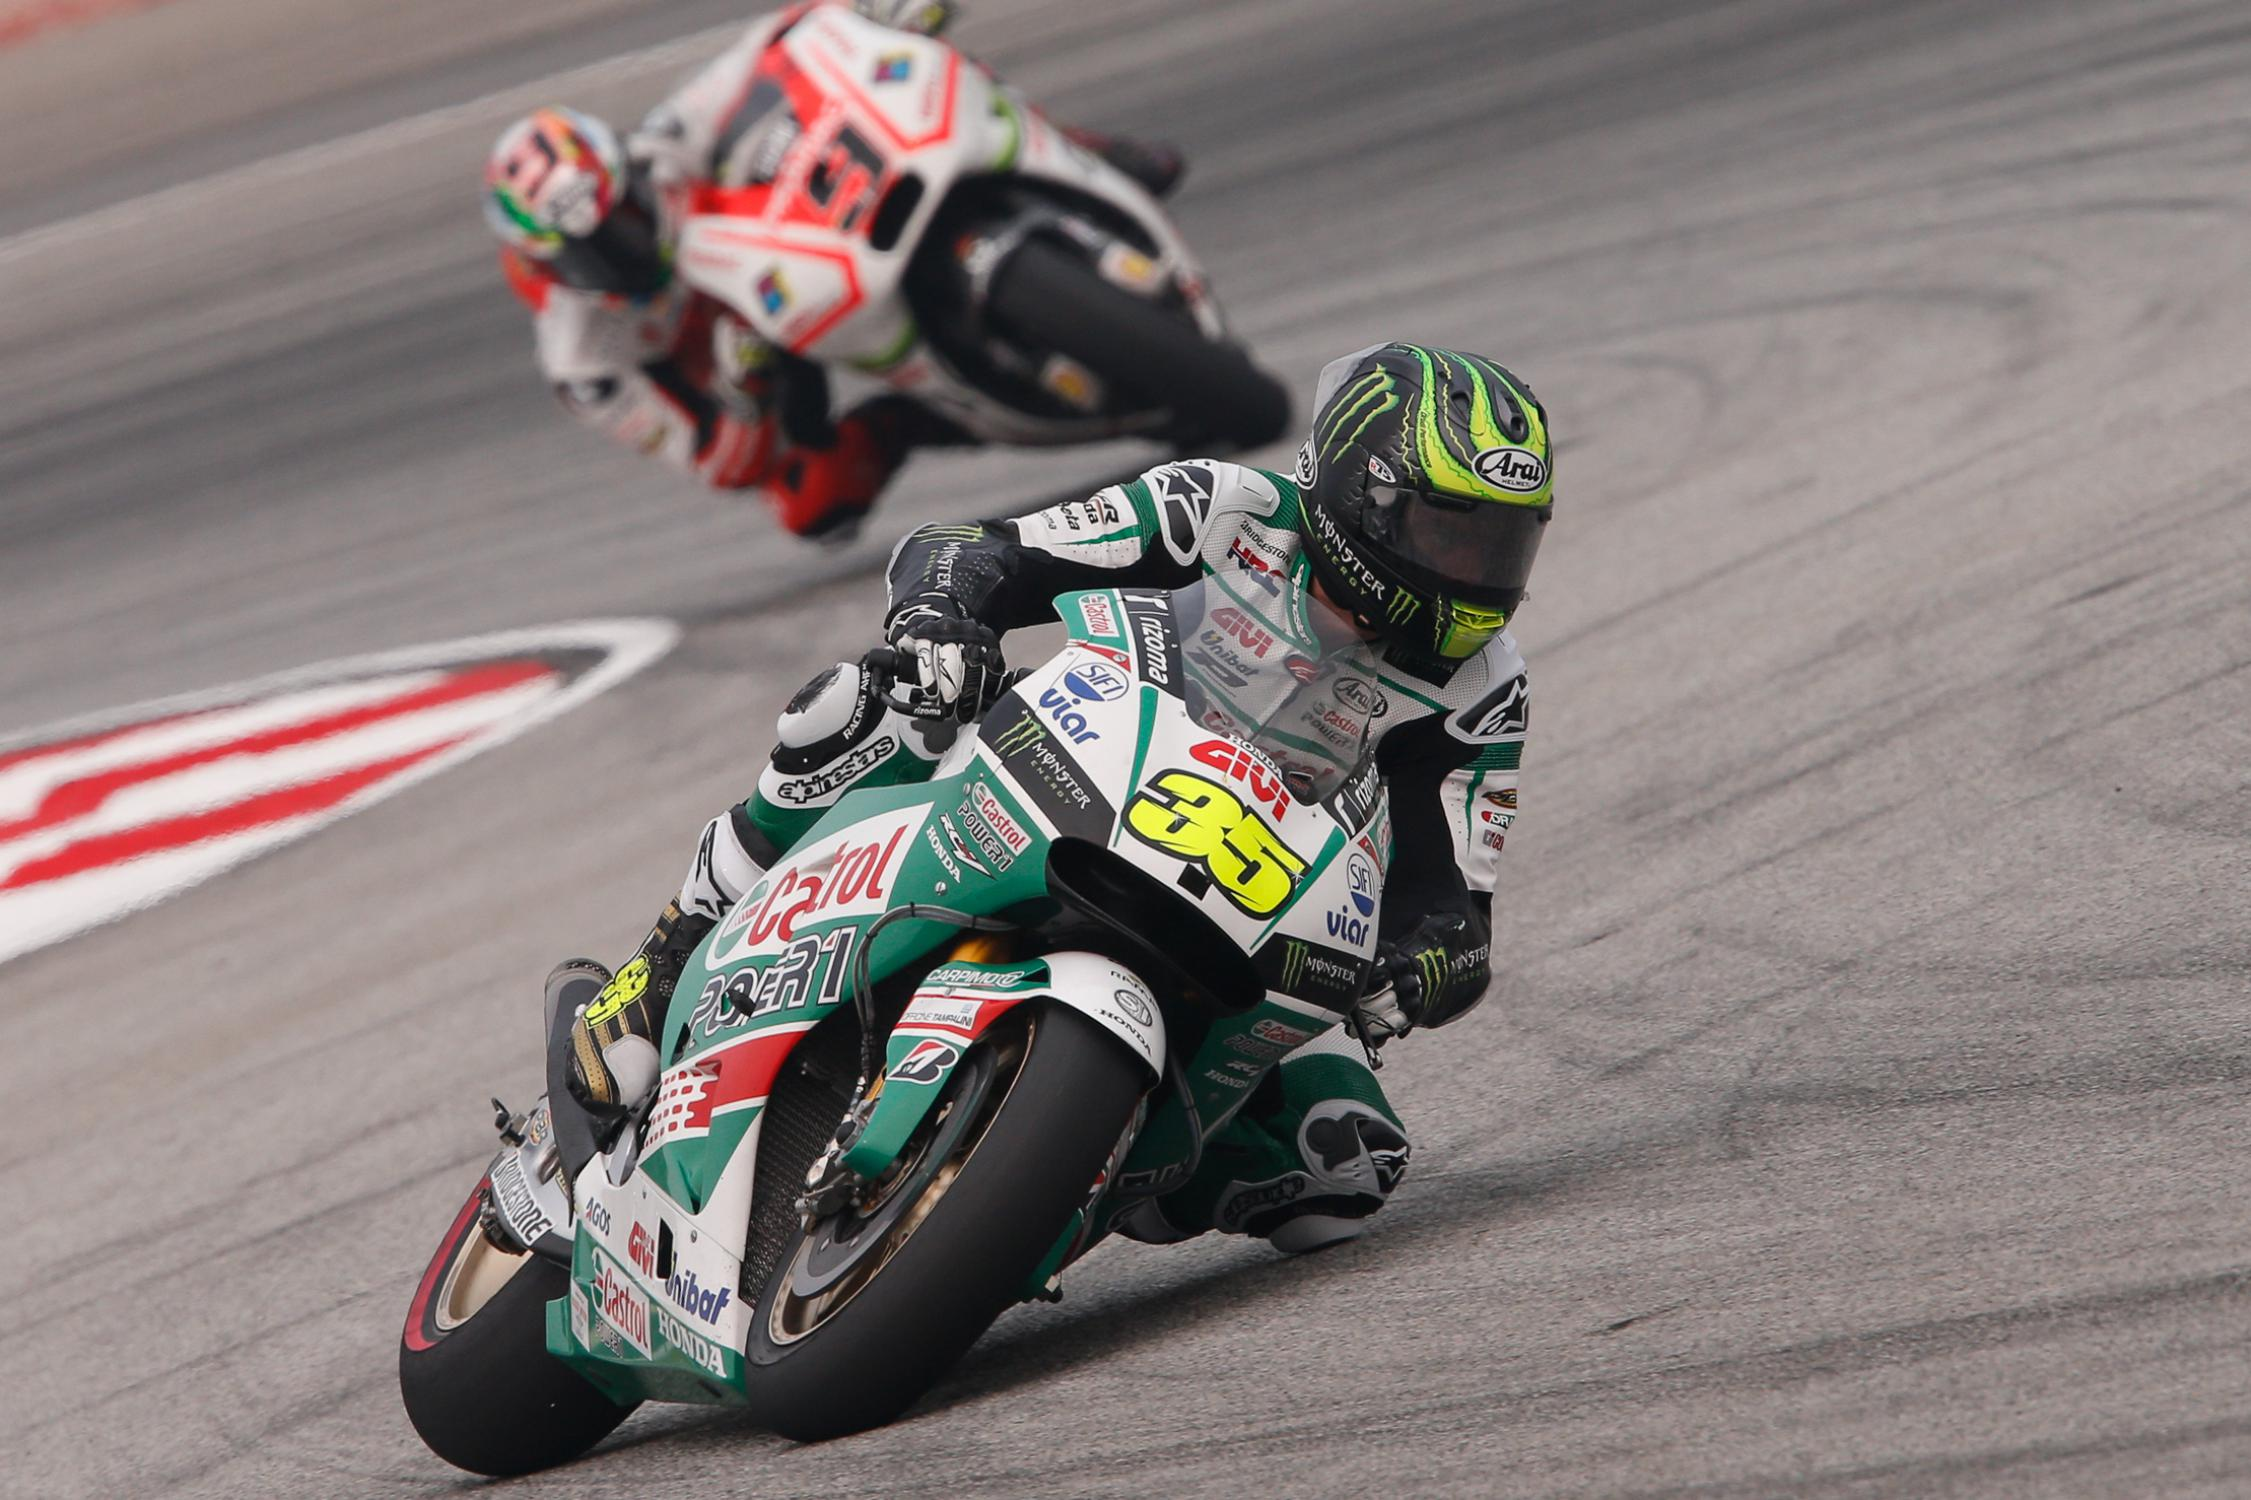 [GP] Sepang - Page 2 35-crutchlow__gp_3143.gallery_full_top_fullscreen